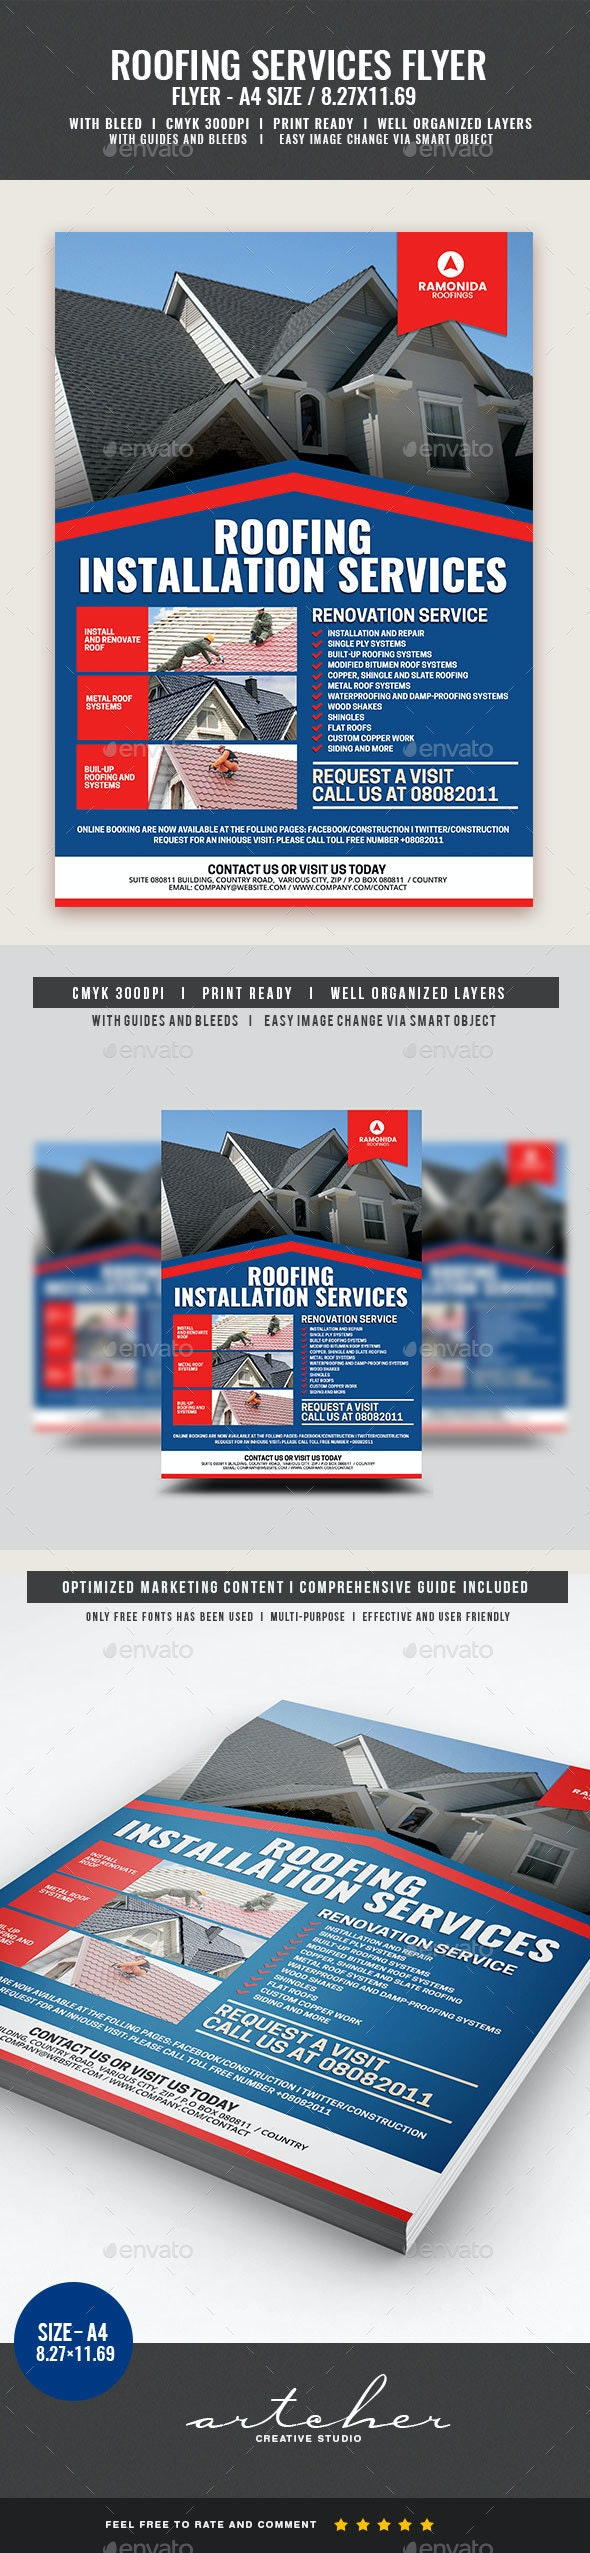 Roofing Services Flyer - Corporate Flyers